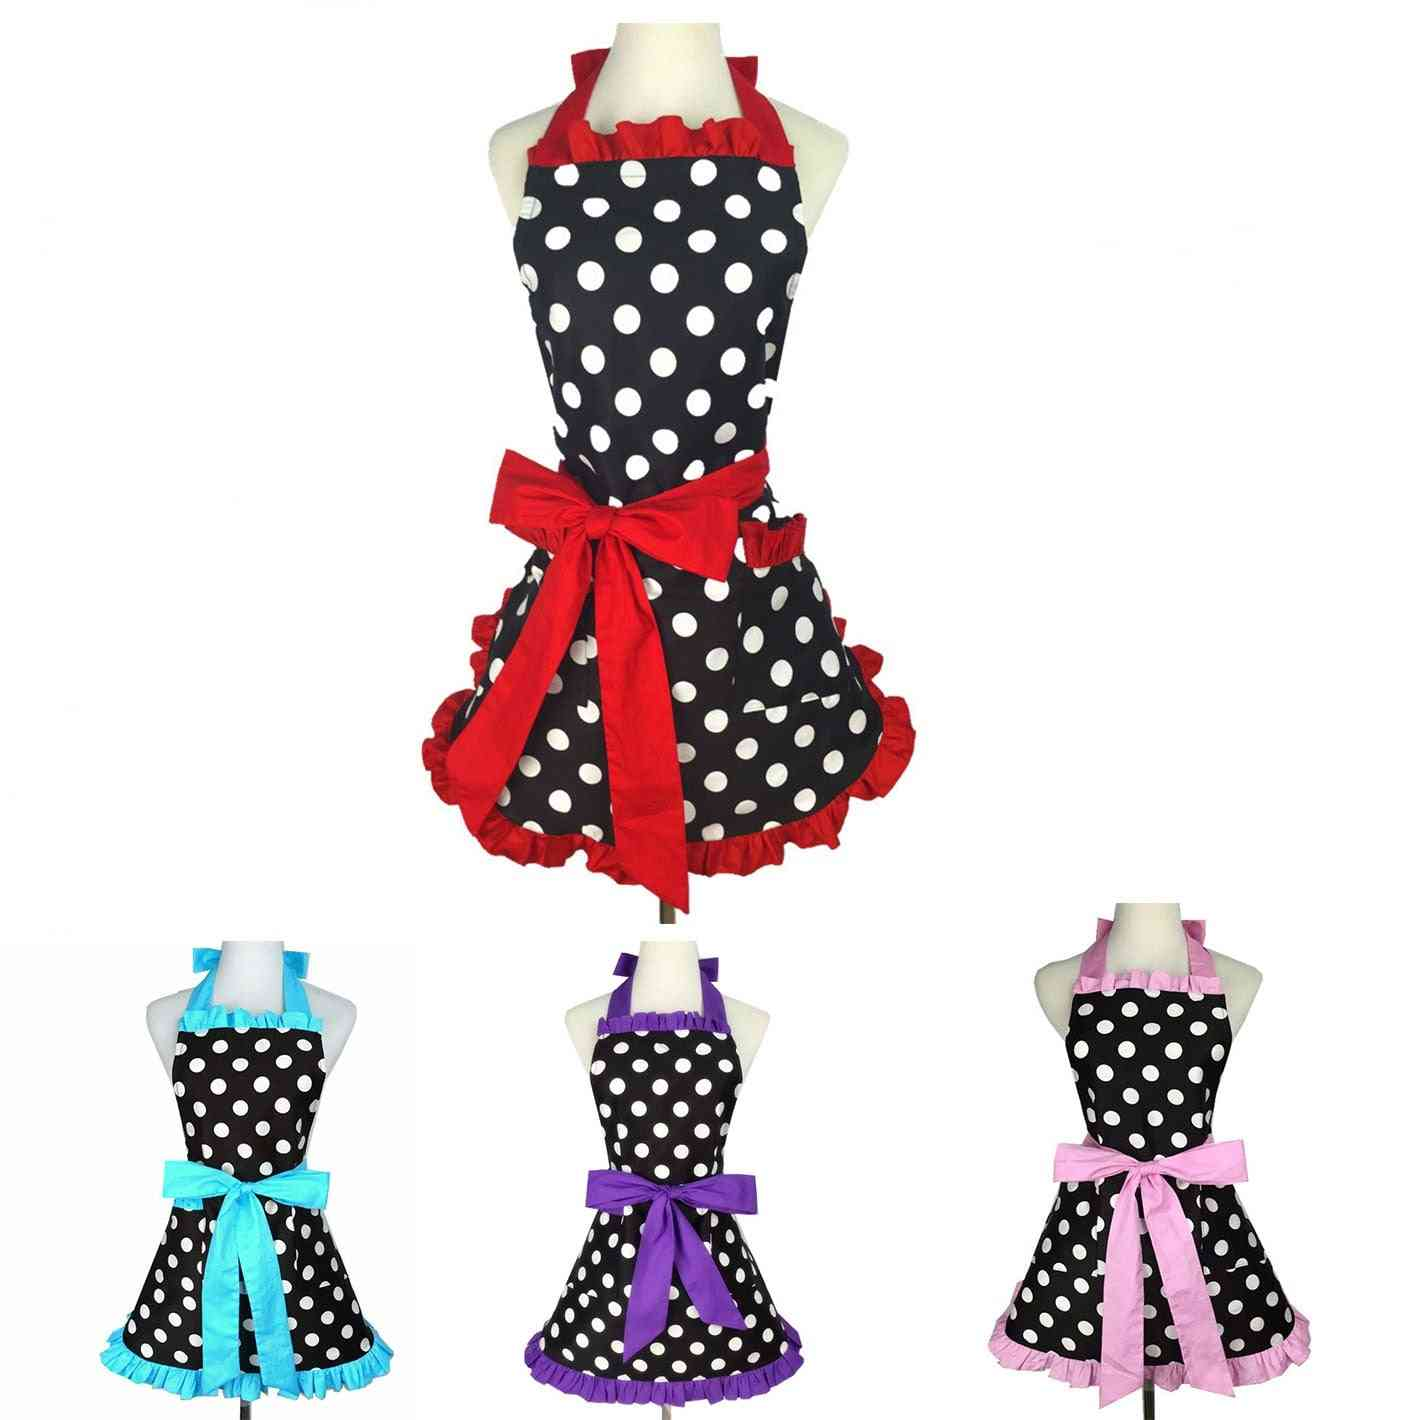 Lovely Apron Kitchen Cooking Work Clothes, Waterproof & Oilproof